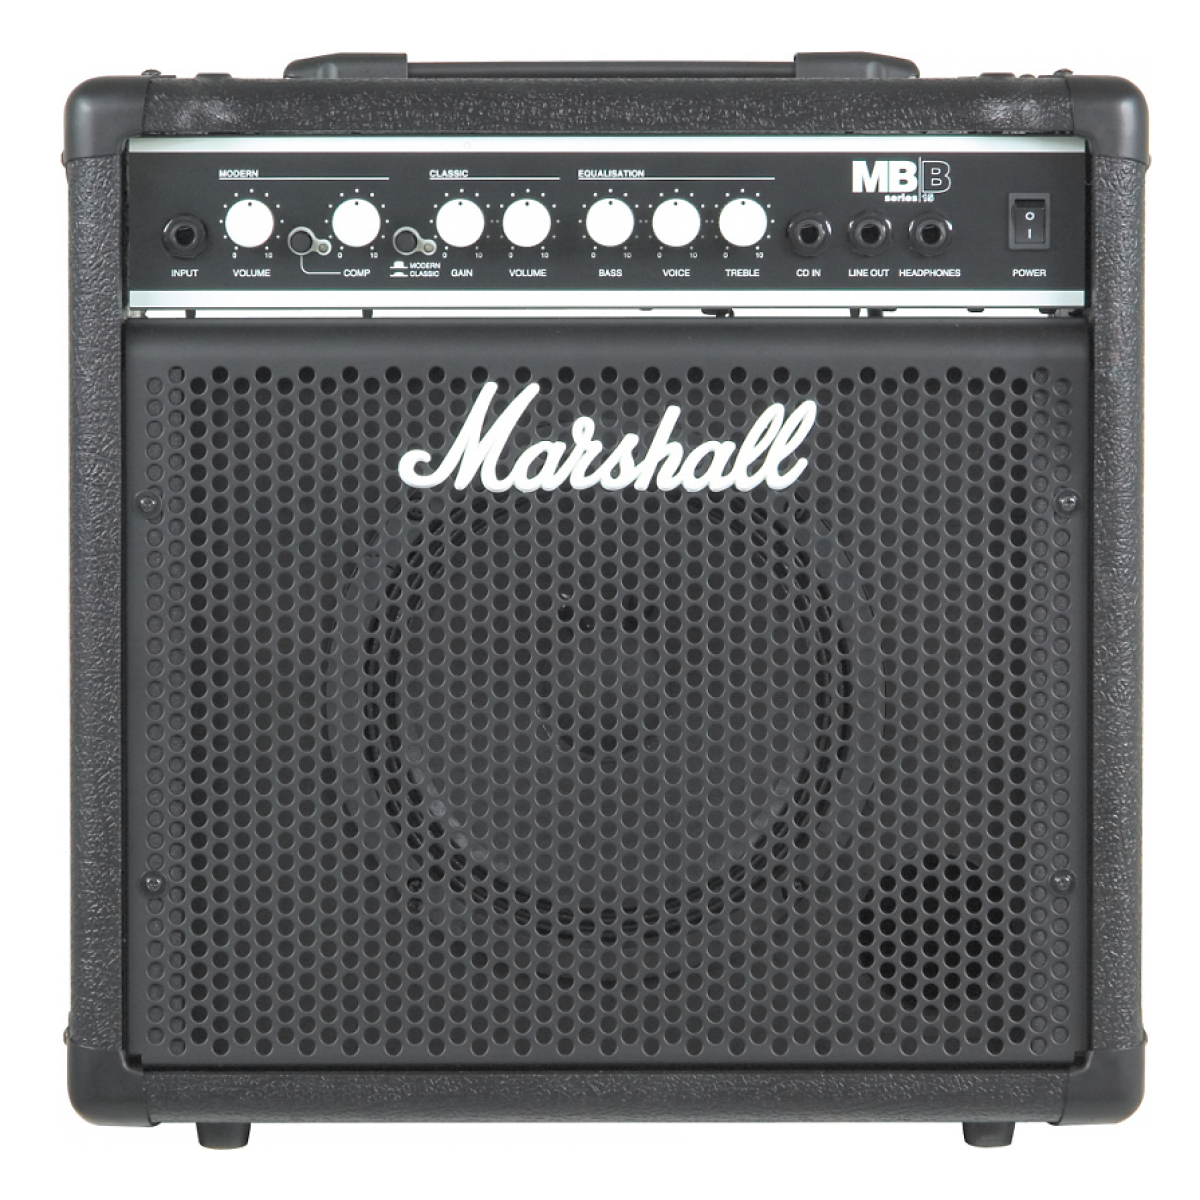 marshall mb15 bass combo amp solid state combo bass amps bass guitar amps bass. Black Bedroom Furniture Sets. Home Design Ideas